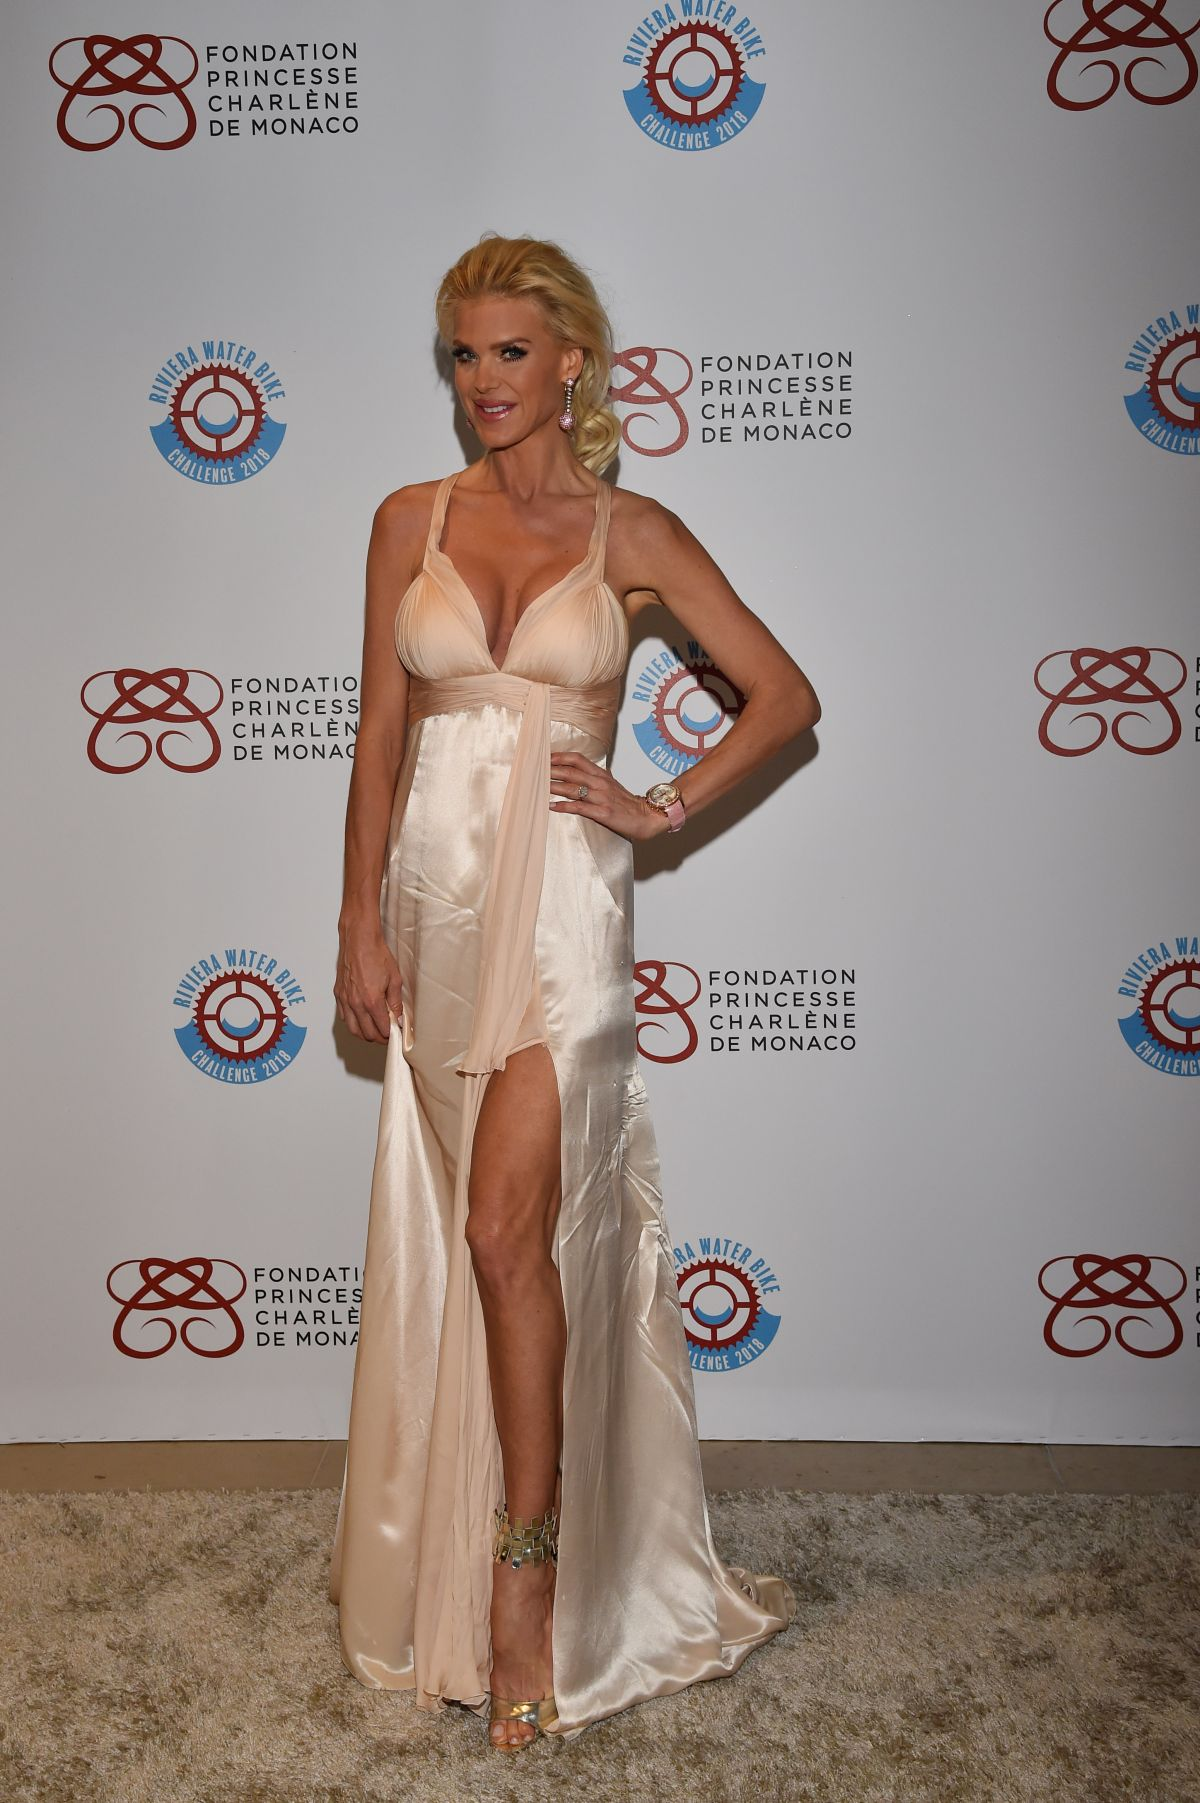 68895542_victoria-silvstedt-2nd-gala-of-riviera-water-bike-challenge-at-yacht-club-in.jpg